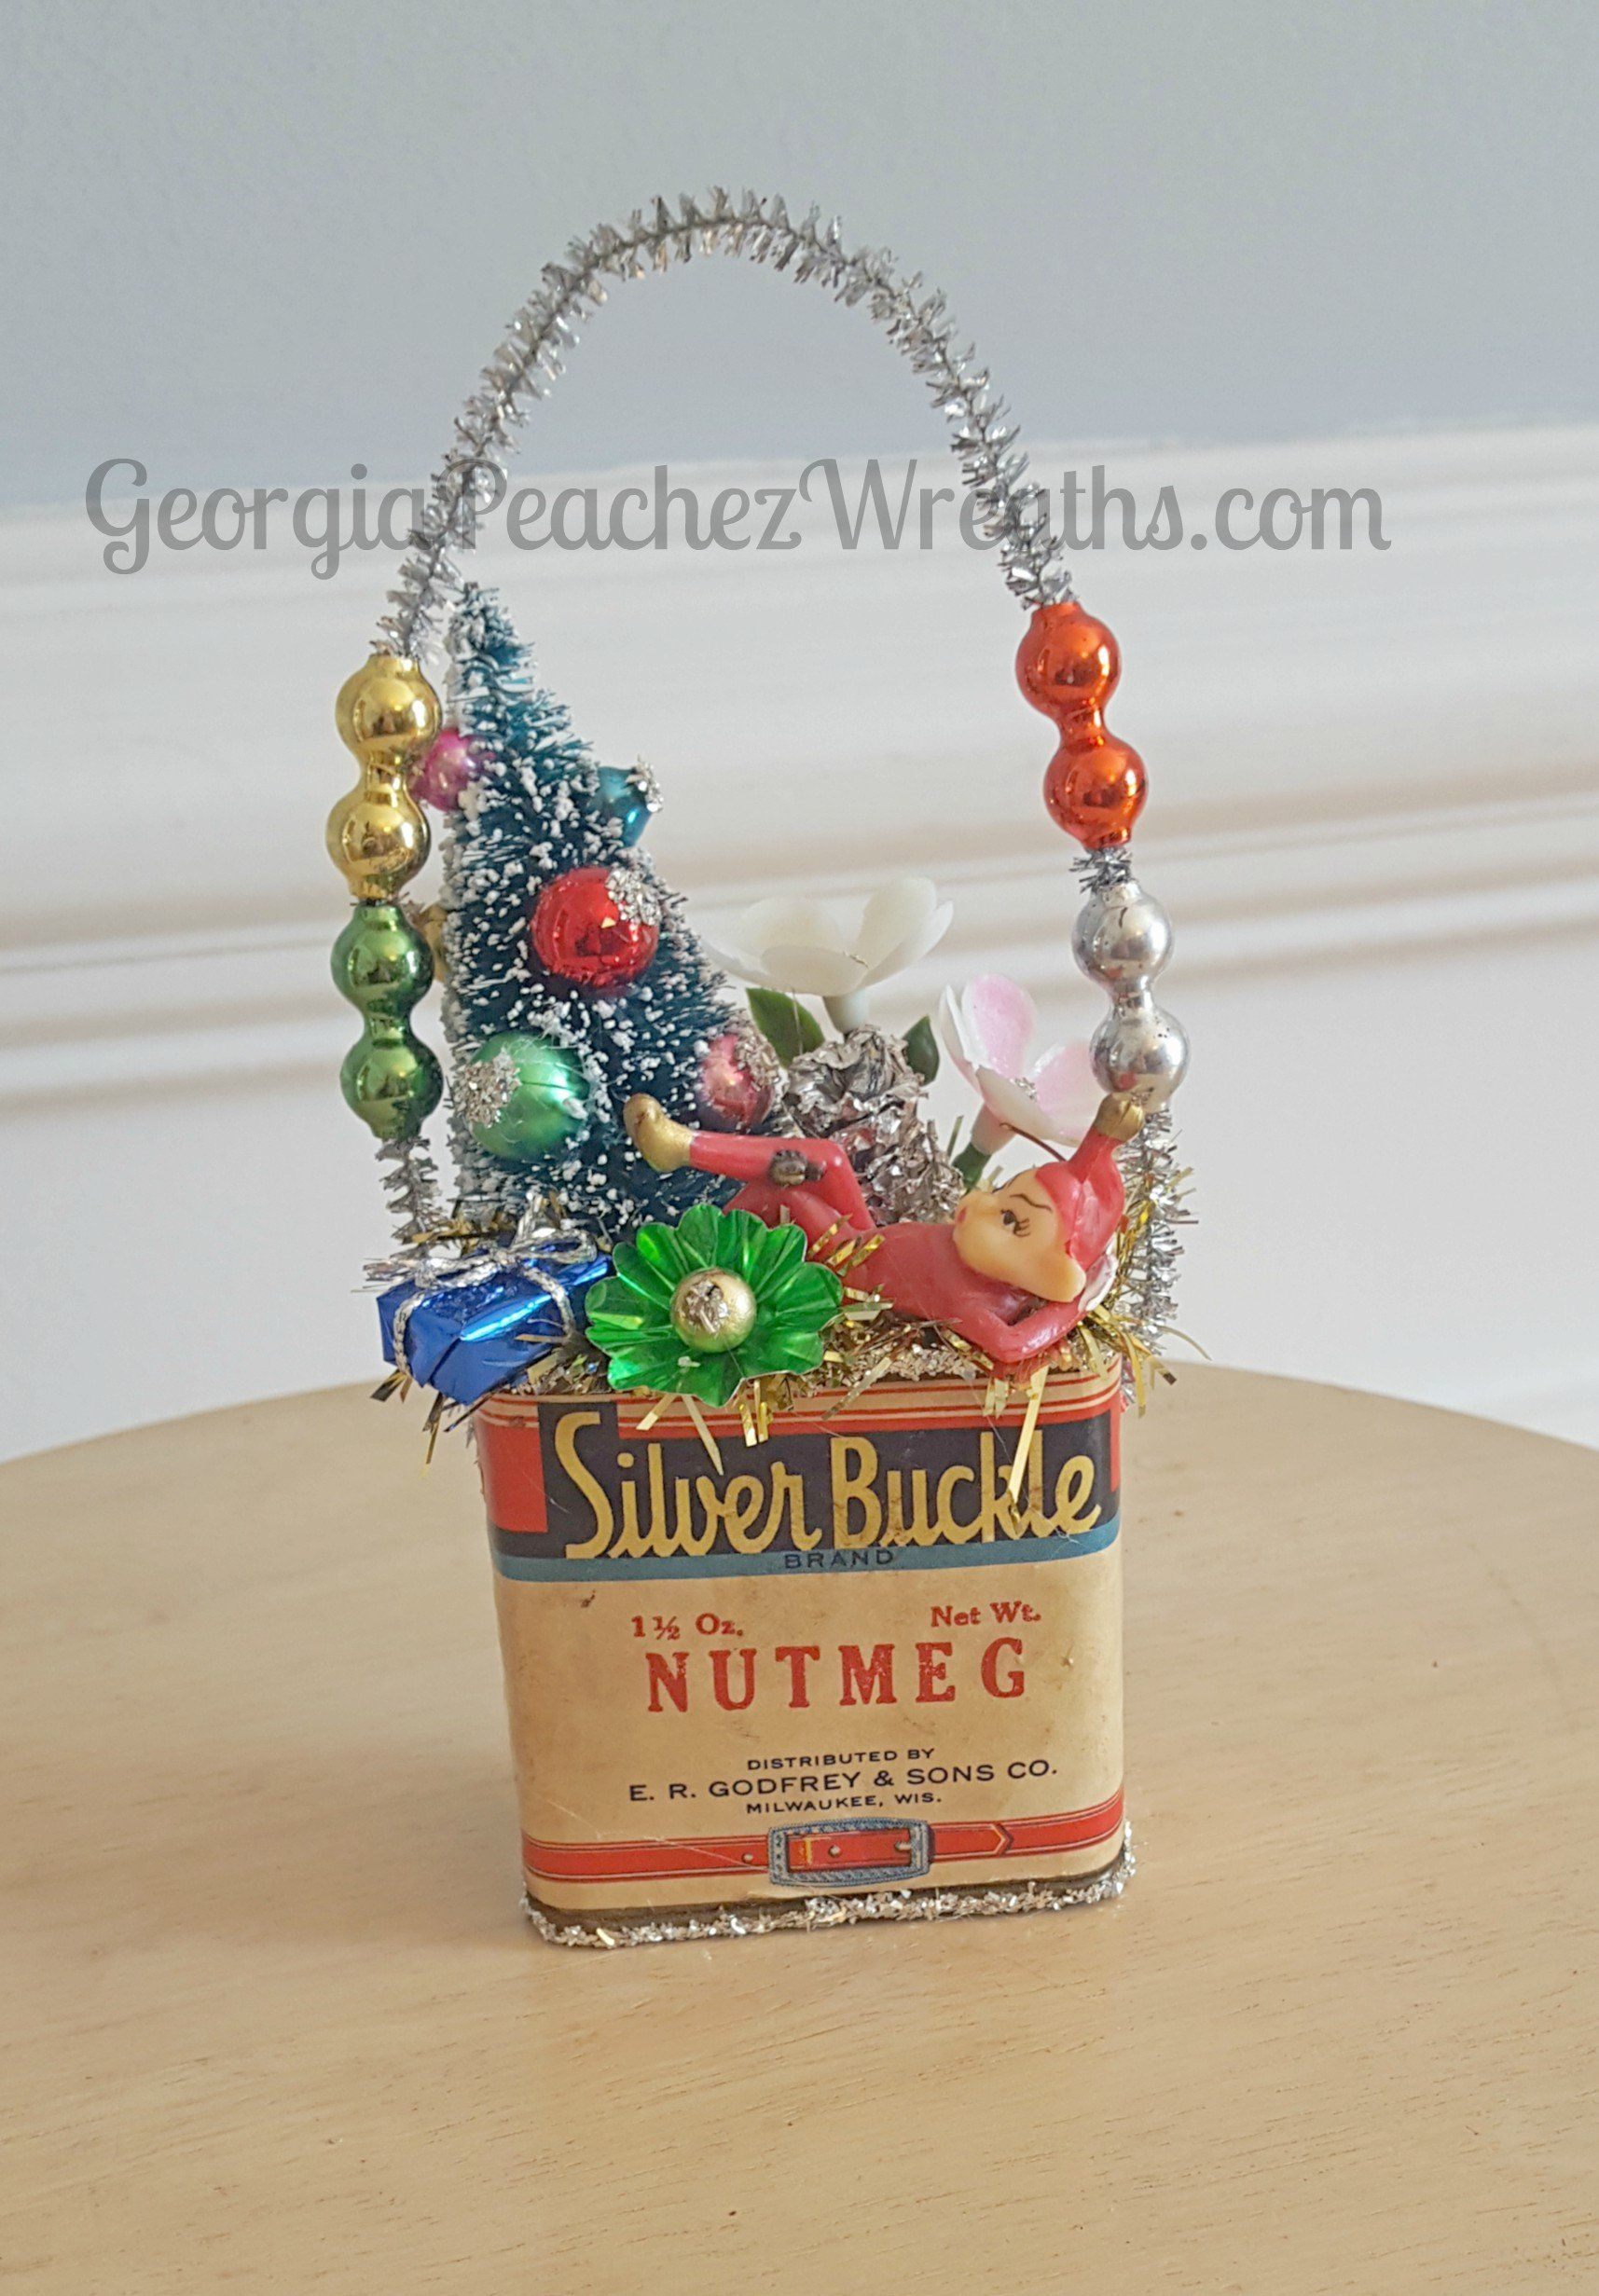 These have always been a fun and popular item for your holiday decor